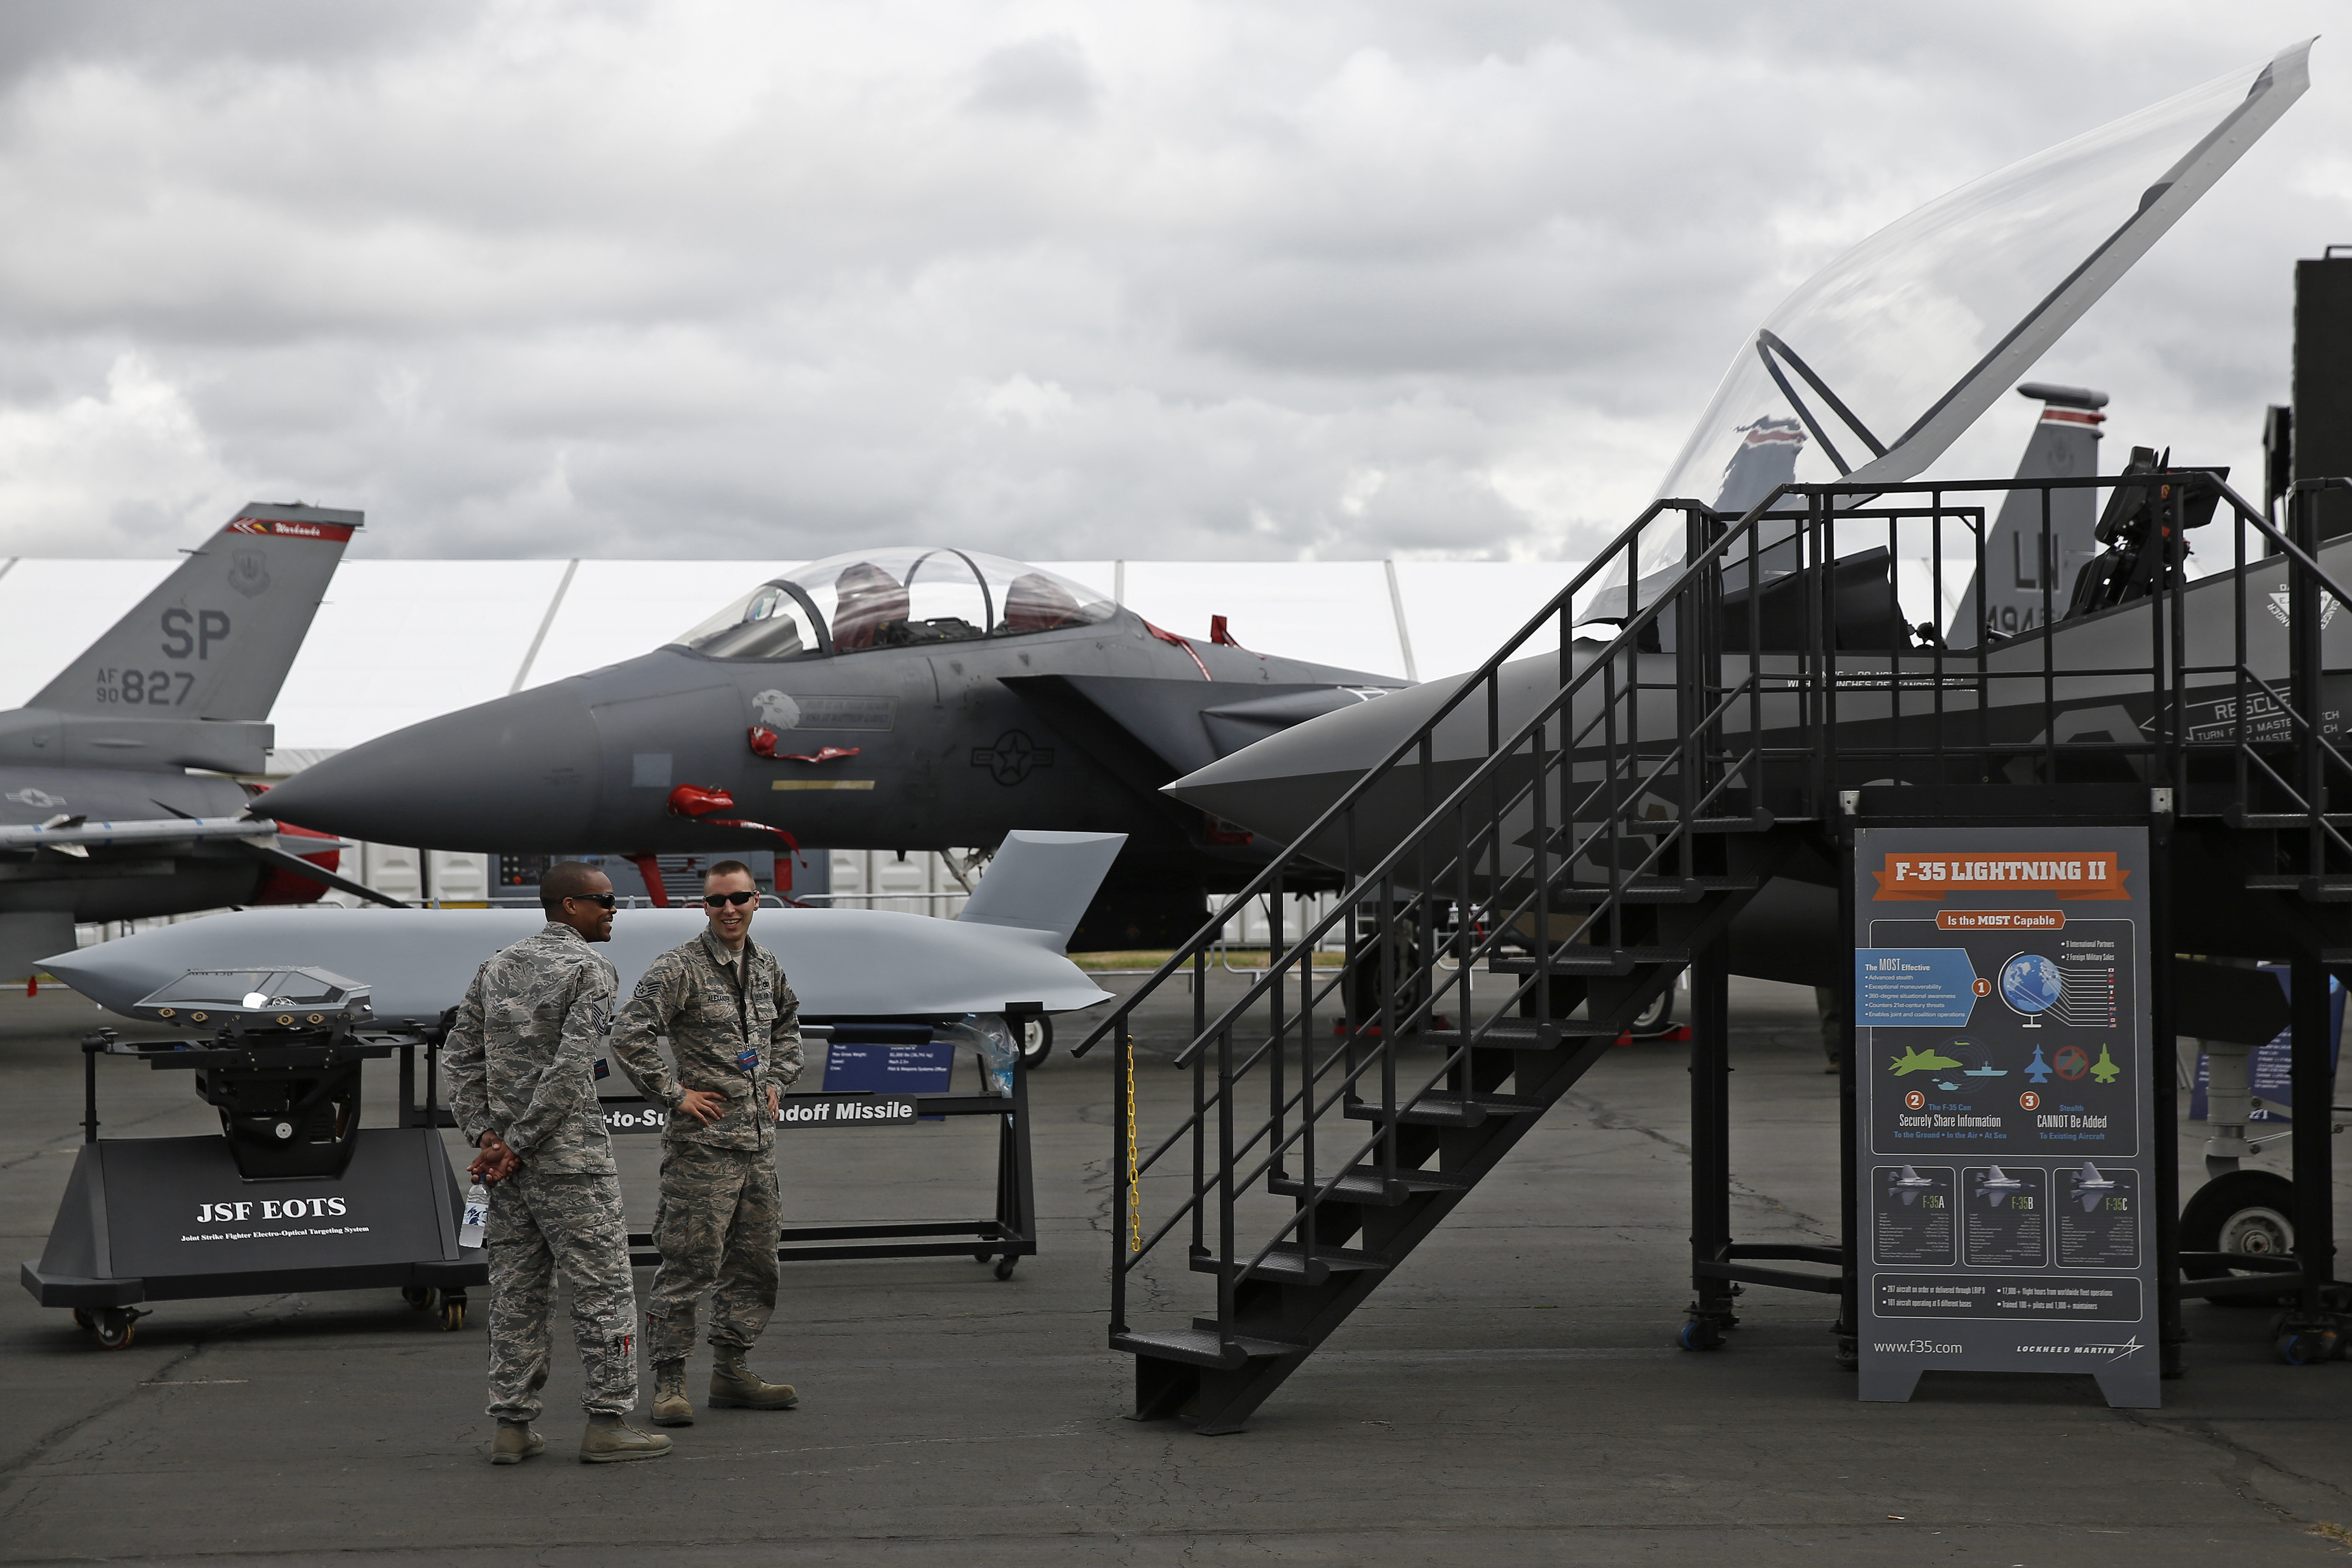 Military personnel talk as they stand beside an F-15E Strike Eagle fighter jet, left, prior to the opening of the Farnborough International Airshow in Farnborough, U.K., on Sunday, July 13, 2014.